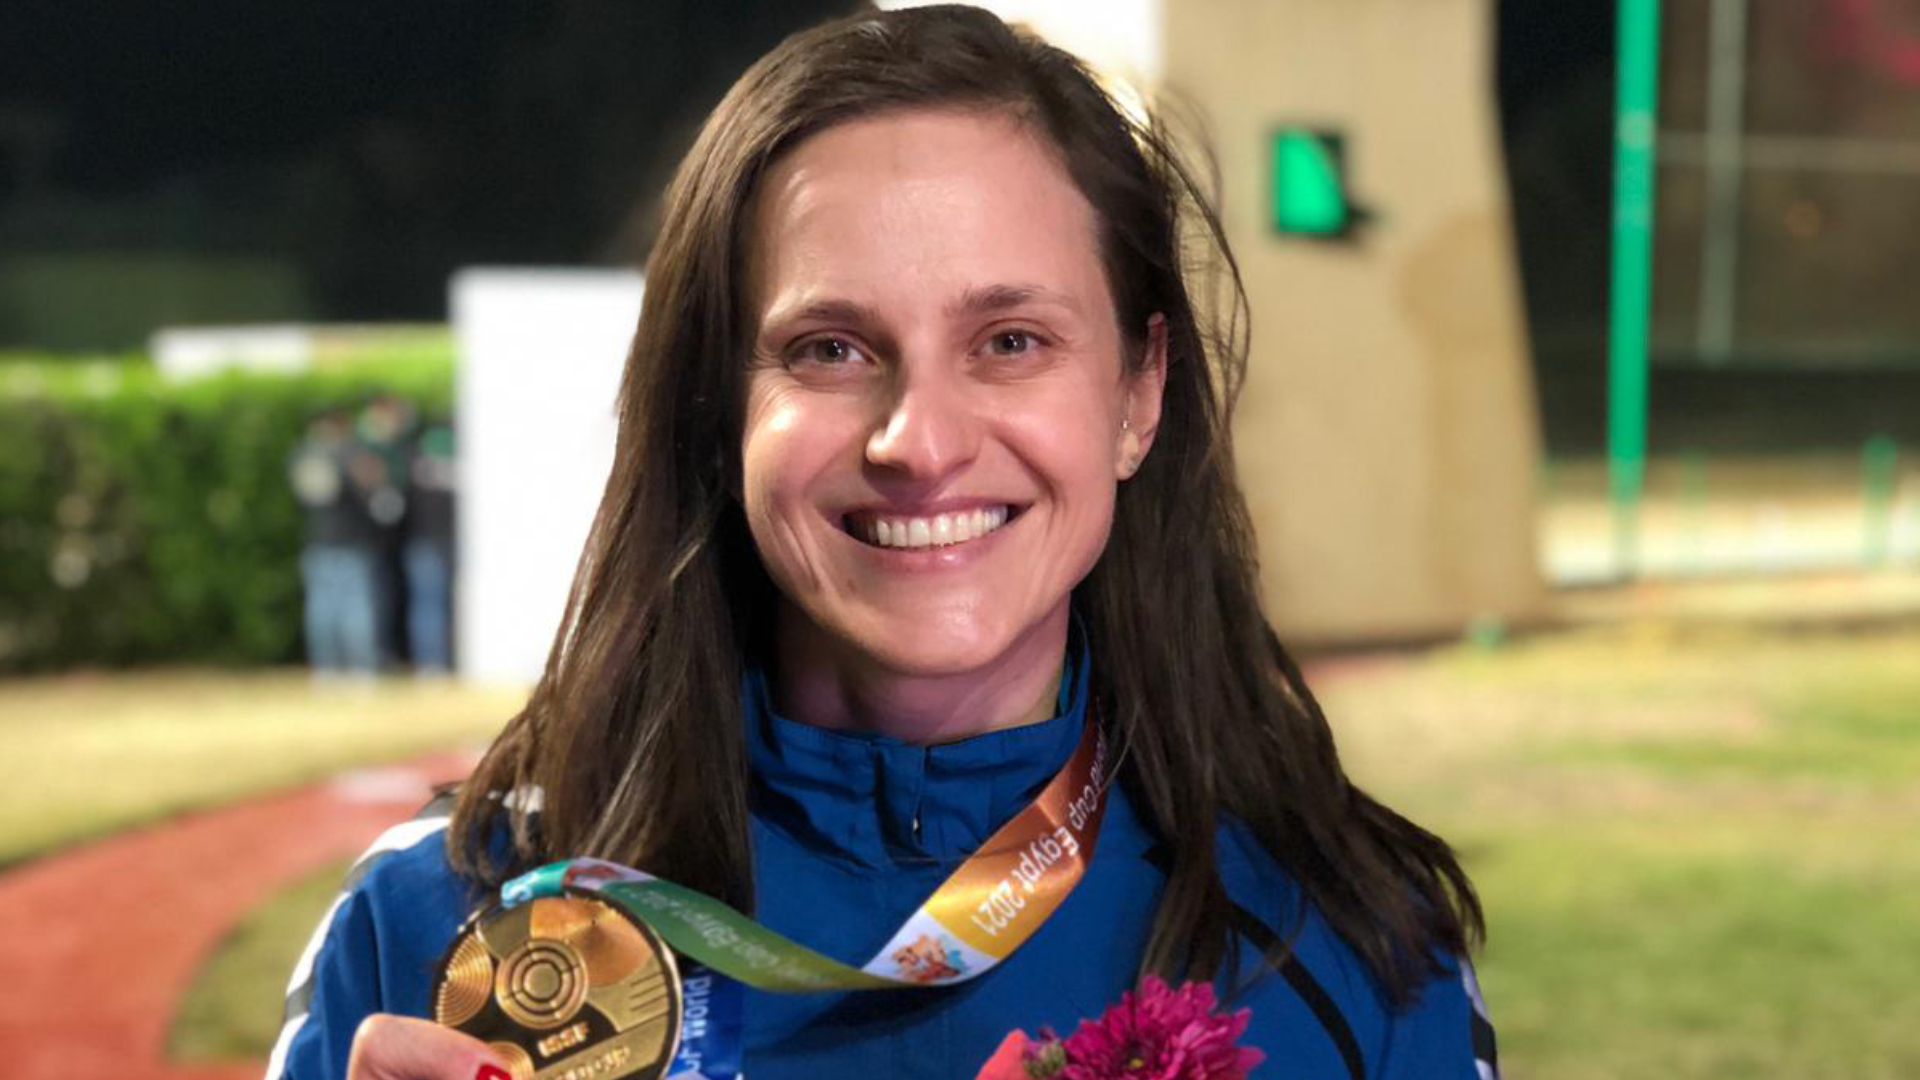 SHOTGUN. DANKA BARTEKOVA WINS FIOCCHI TEAM'S FIRST GOLD MEDAL IN CAIRO